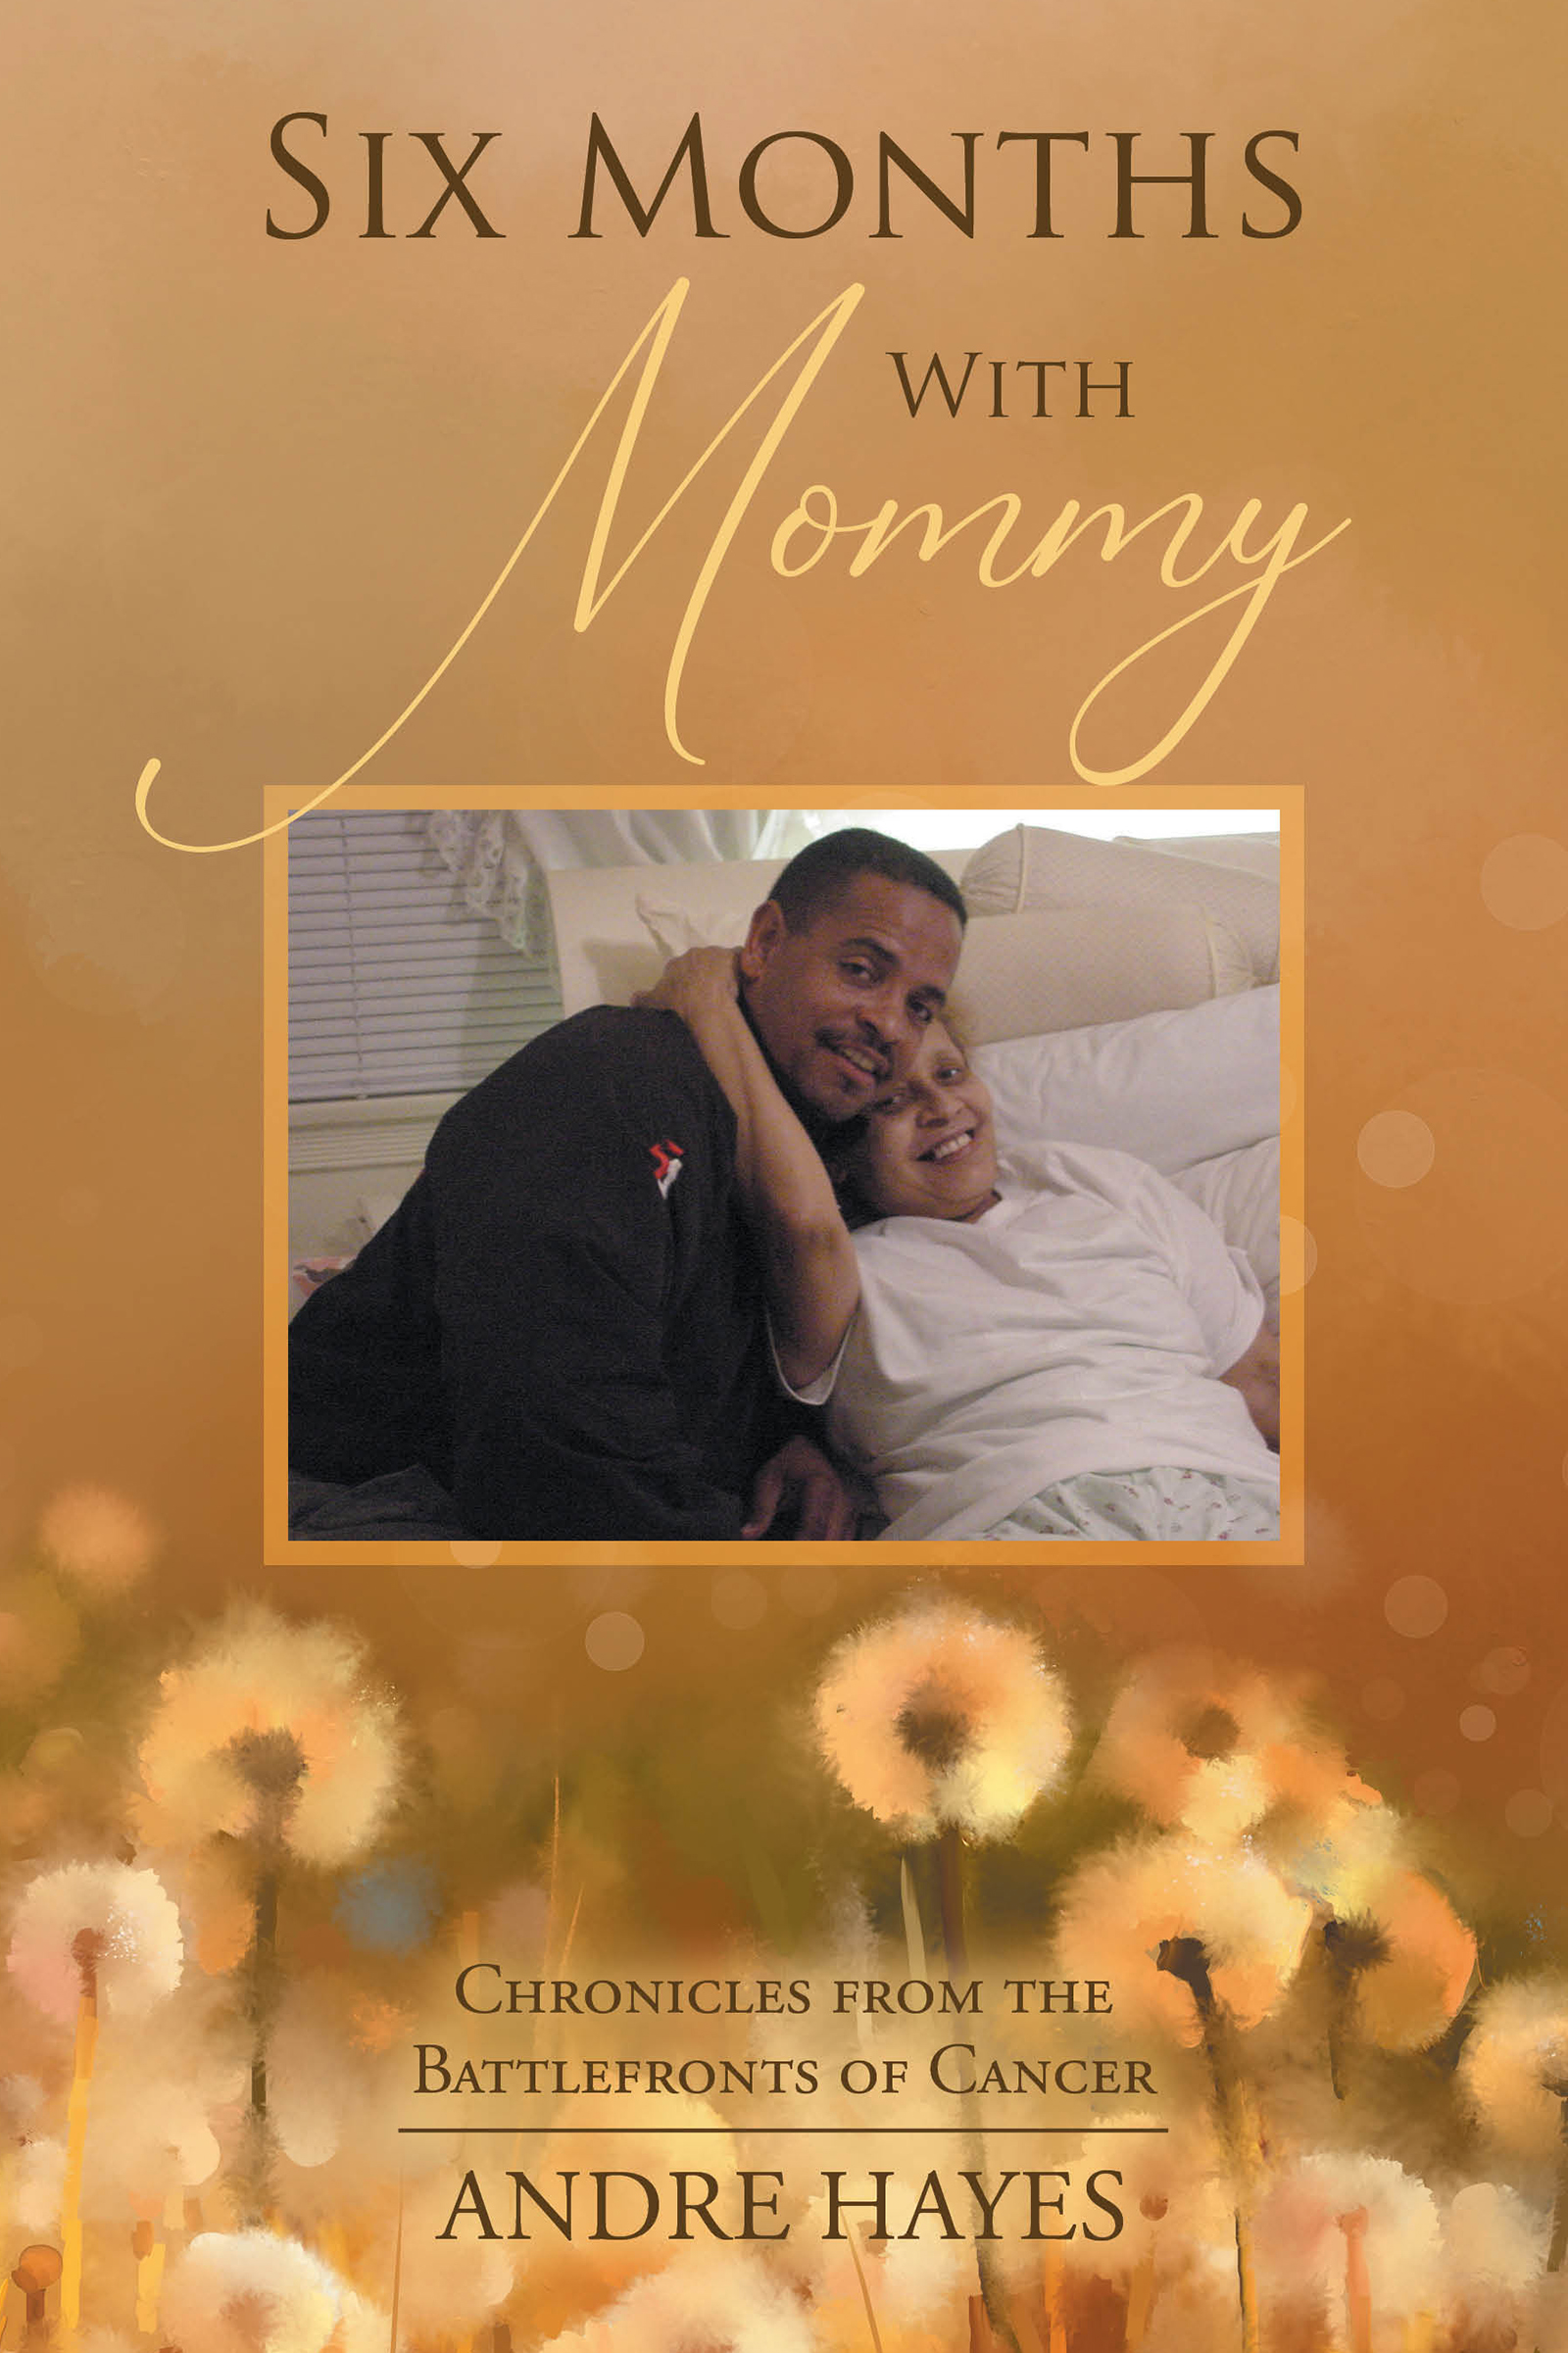 To breath and live with cancer shared in an emotionally powerful book by Andre Hayes